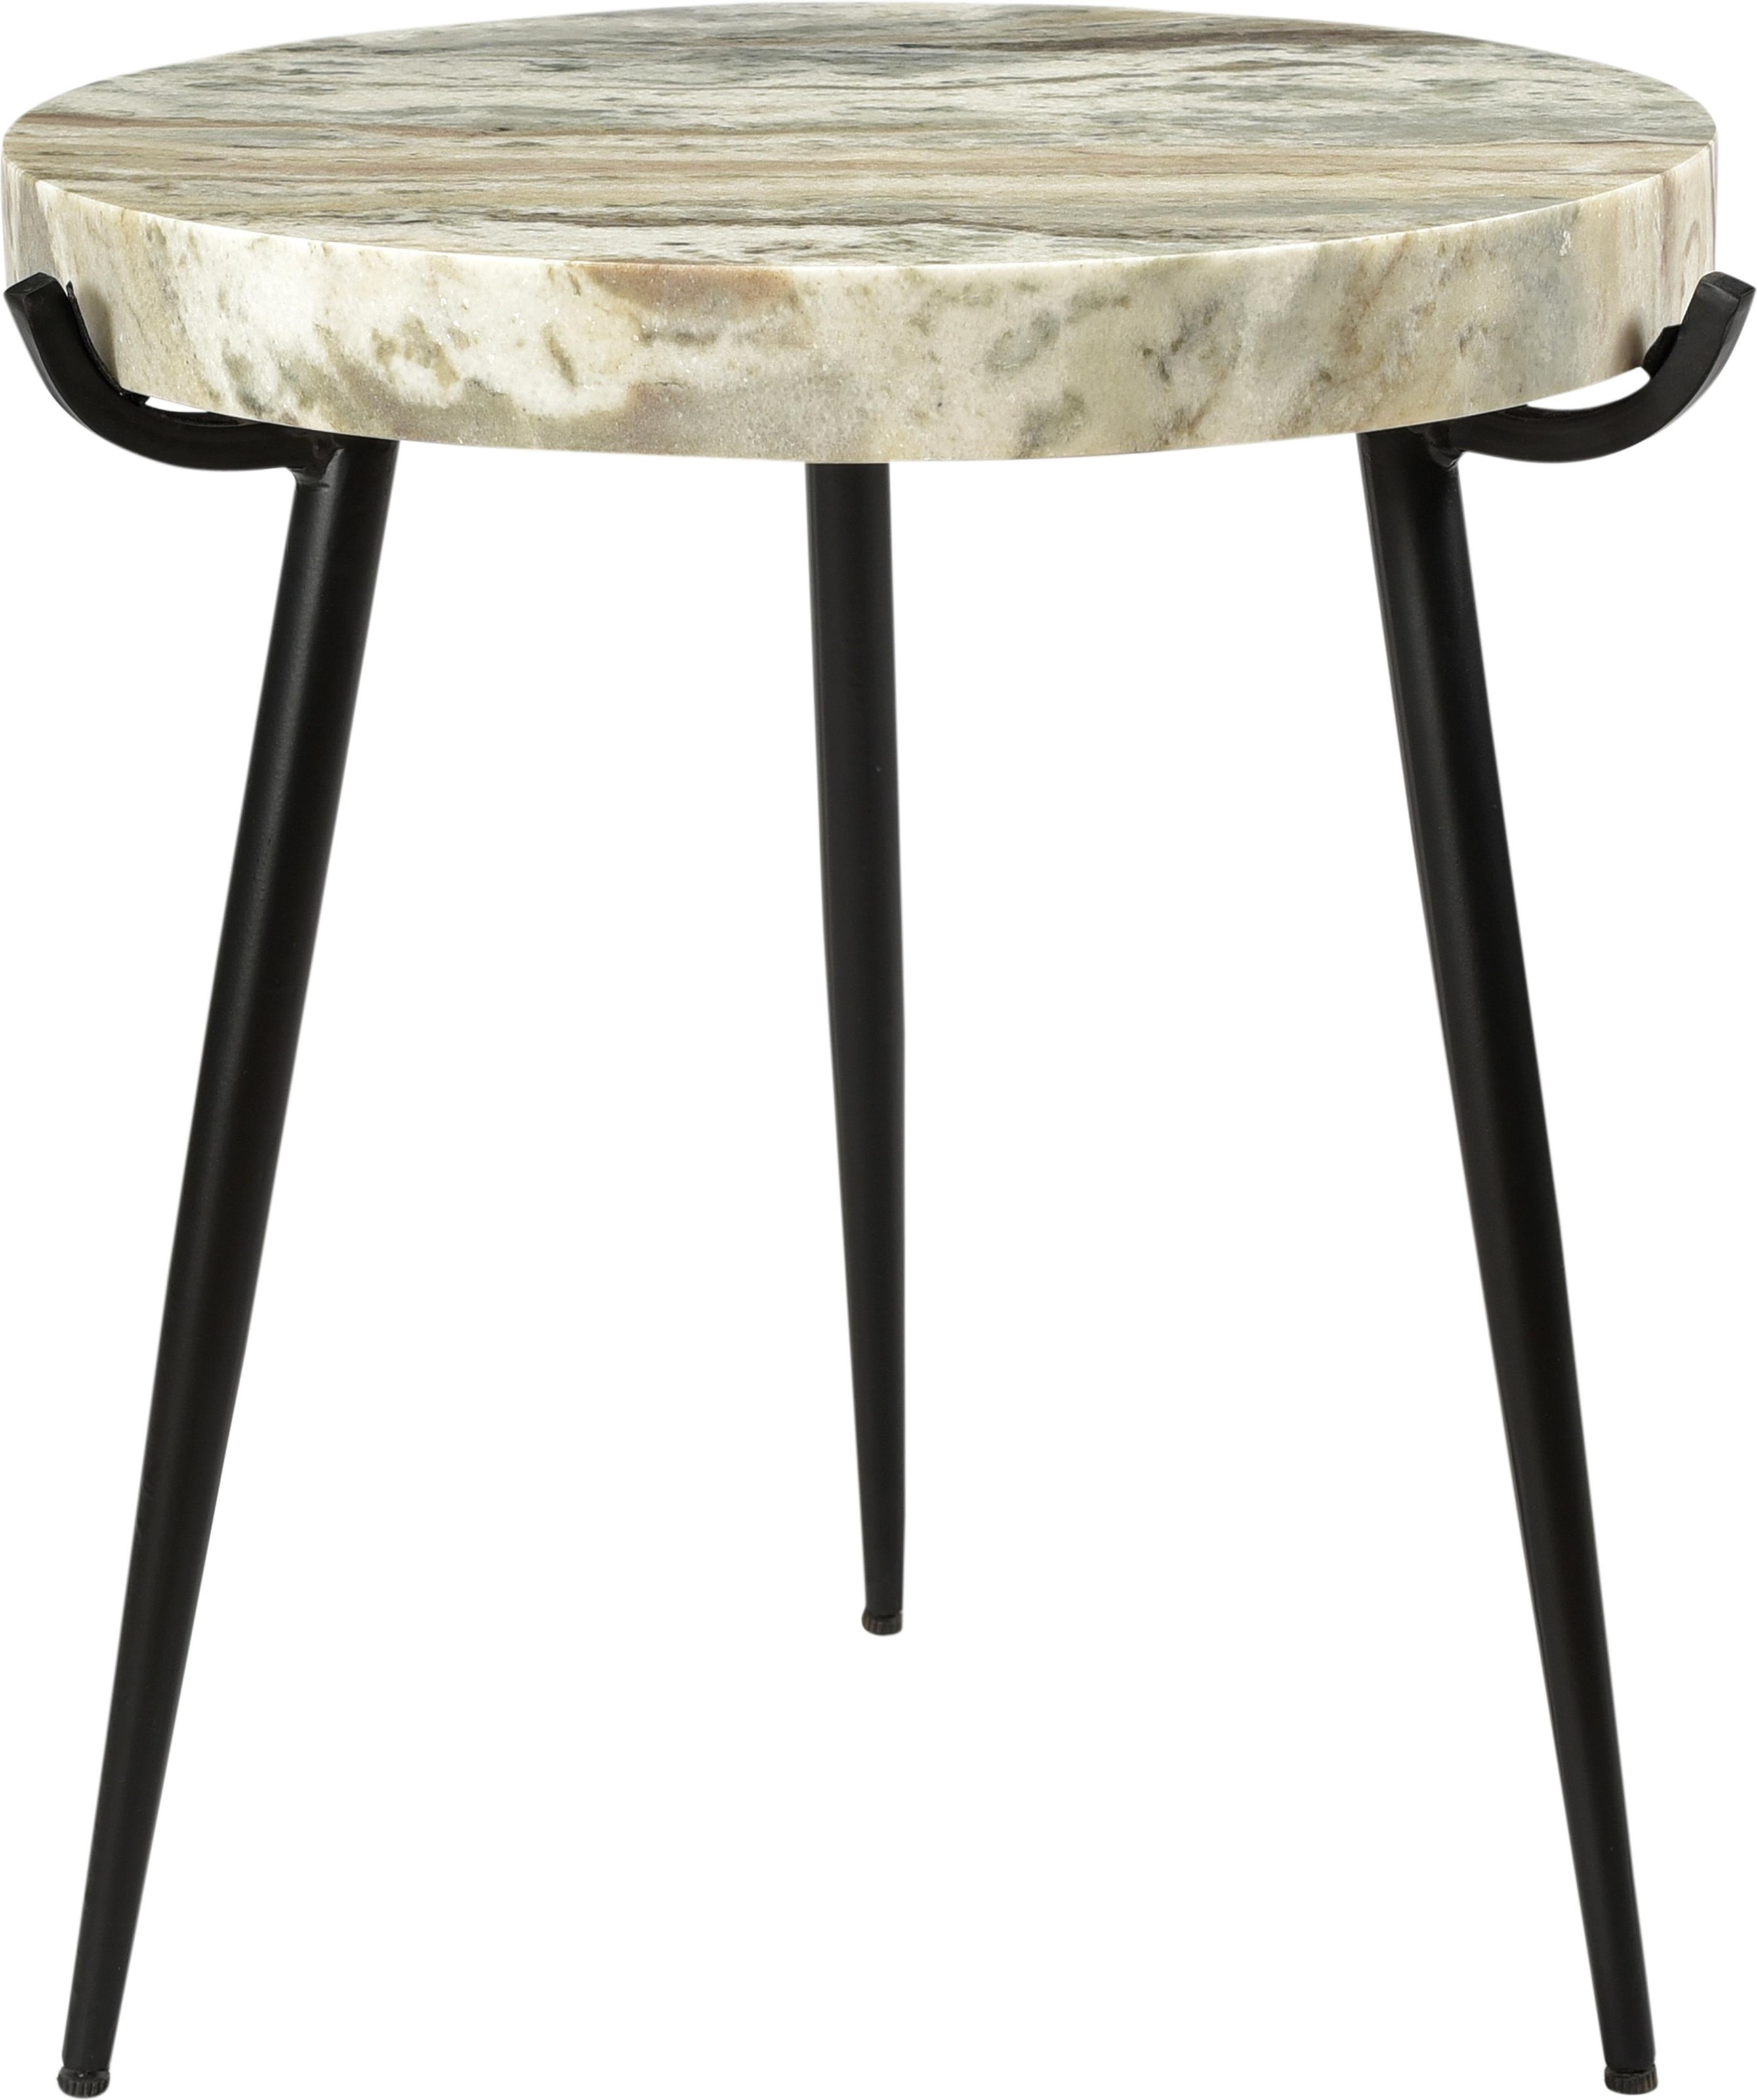 Brinley Brinley Marble Accent Table by Moe's Home Collection at Stoney Creek Furniture